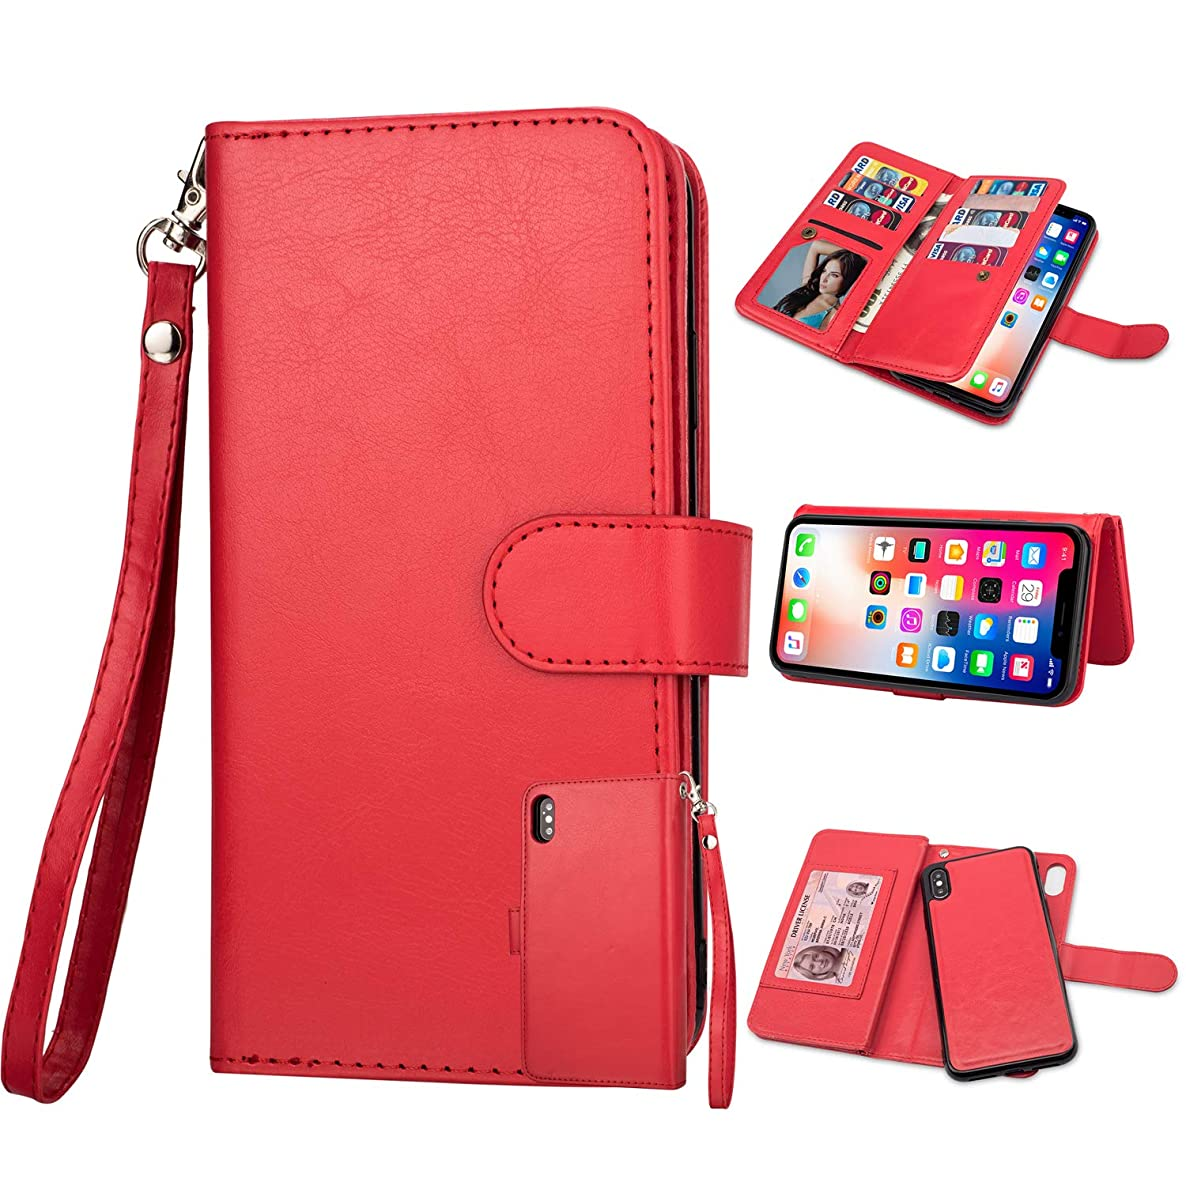 iPhone Xs Max Case,iPhone Xs Max Wallet Case, Ankoe Detachable 2in1 Premium Leather Folio Flip Magnetic 9 Card Slots Money Pocket Leather with Stand Case Cover for iPhone Xs Max 6.5 inch (Red)